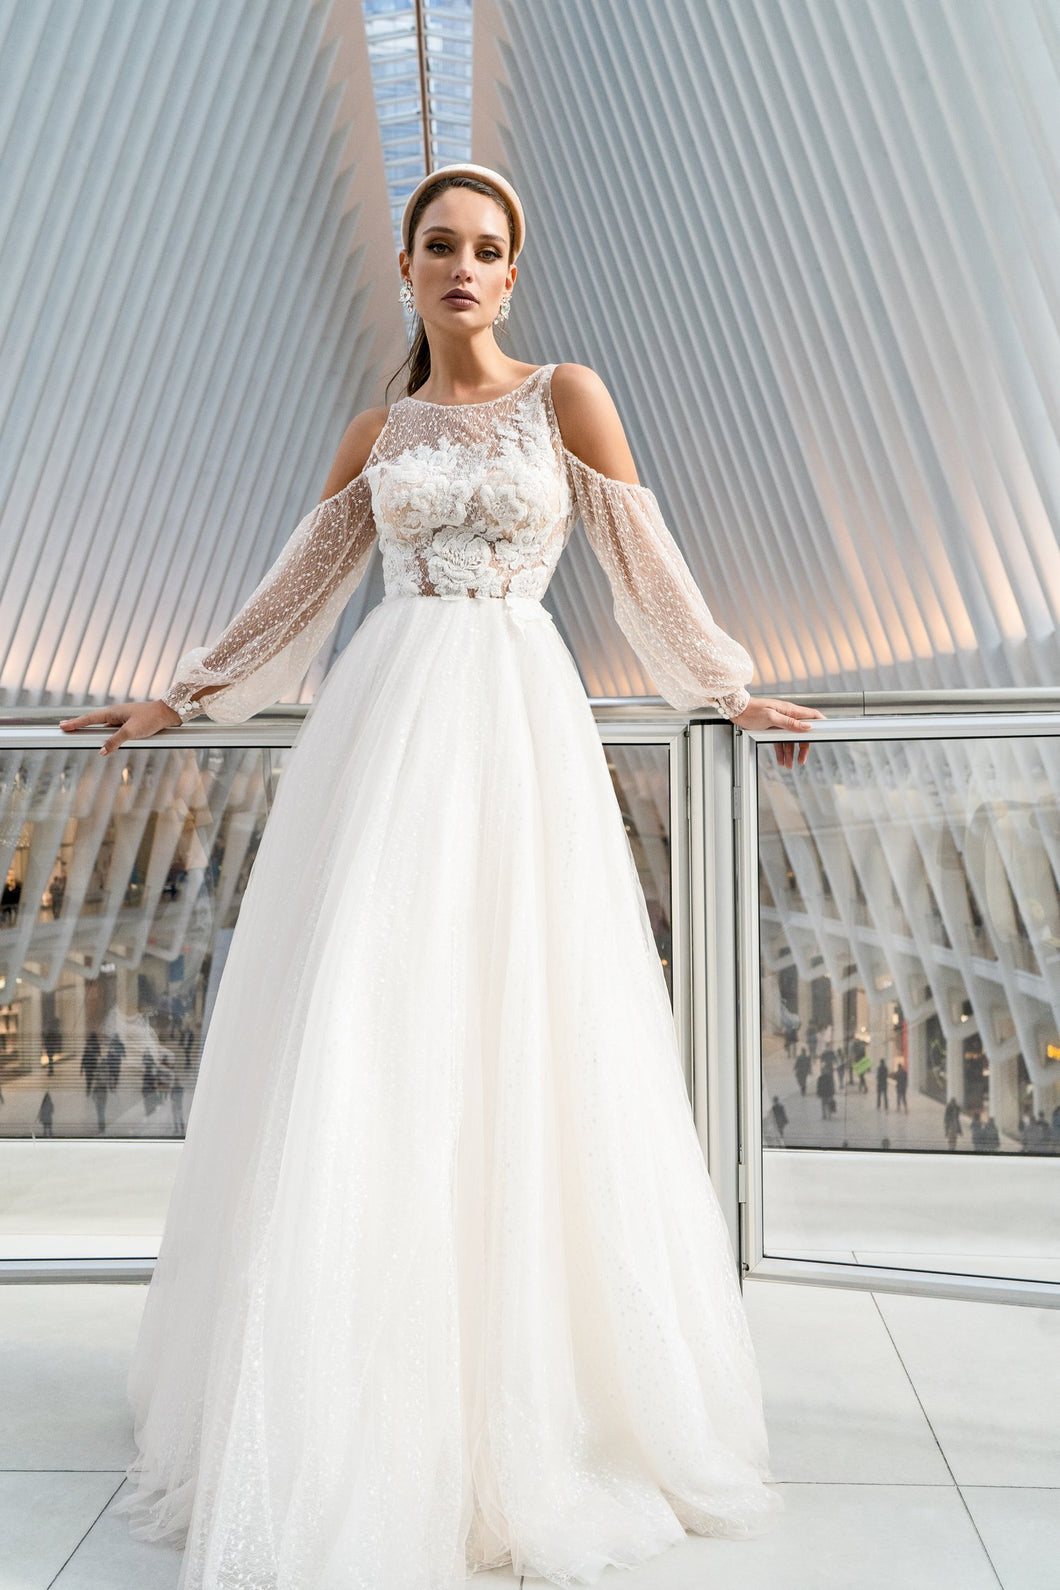 NYC 'Augusta' Elly Haute Couture RTW 044-590 Ready To Wear European Bridal Wedding Gown Designer Philippines